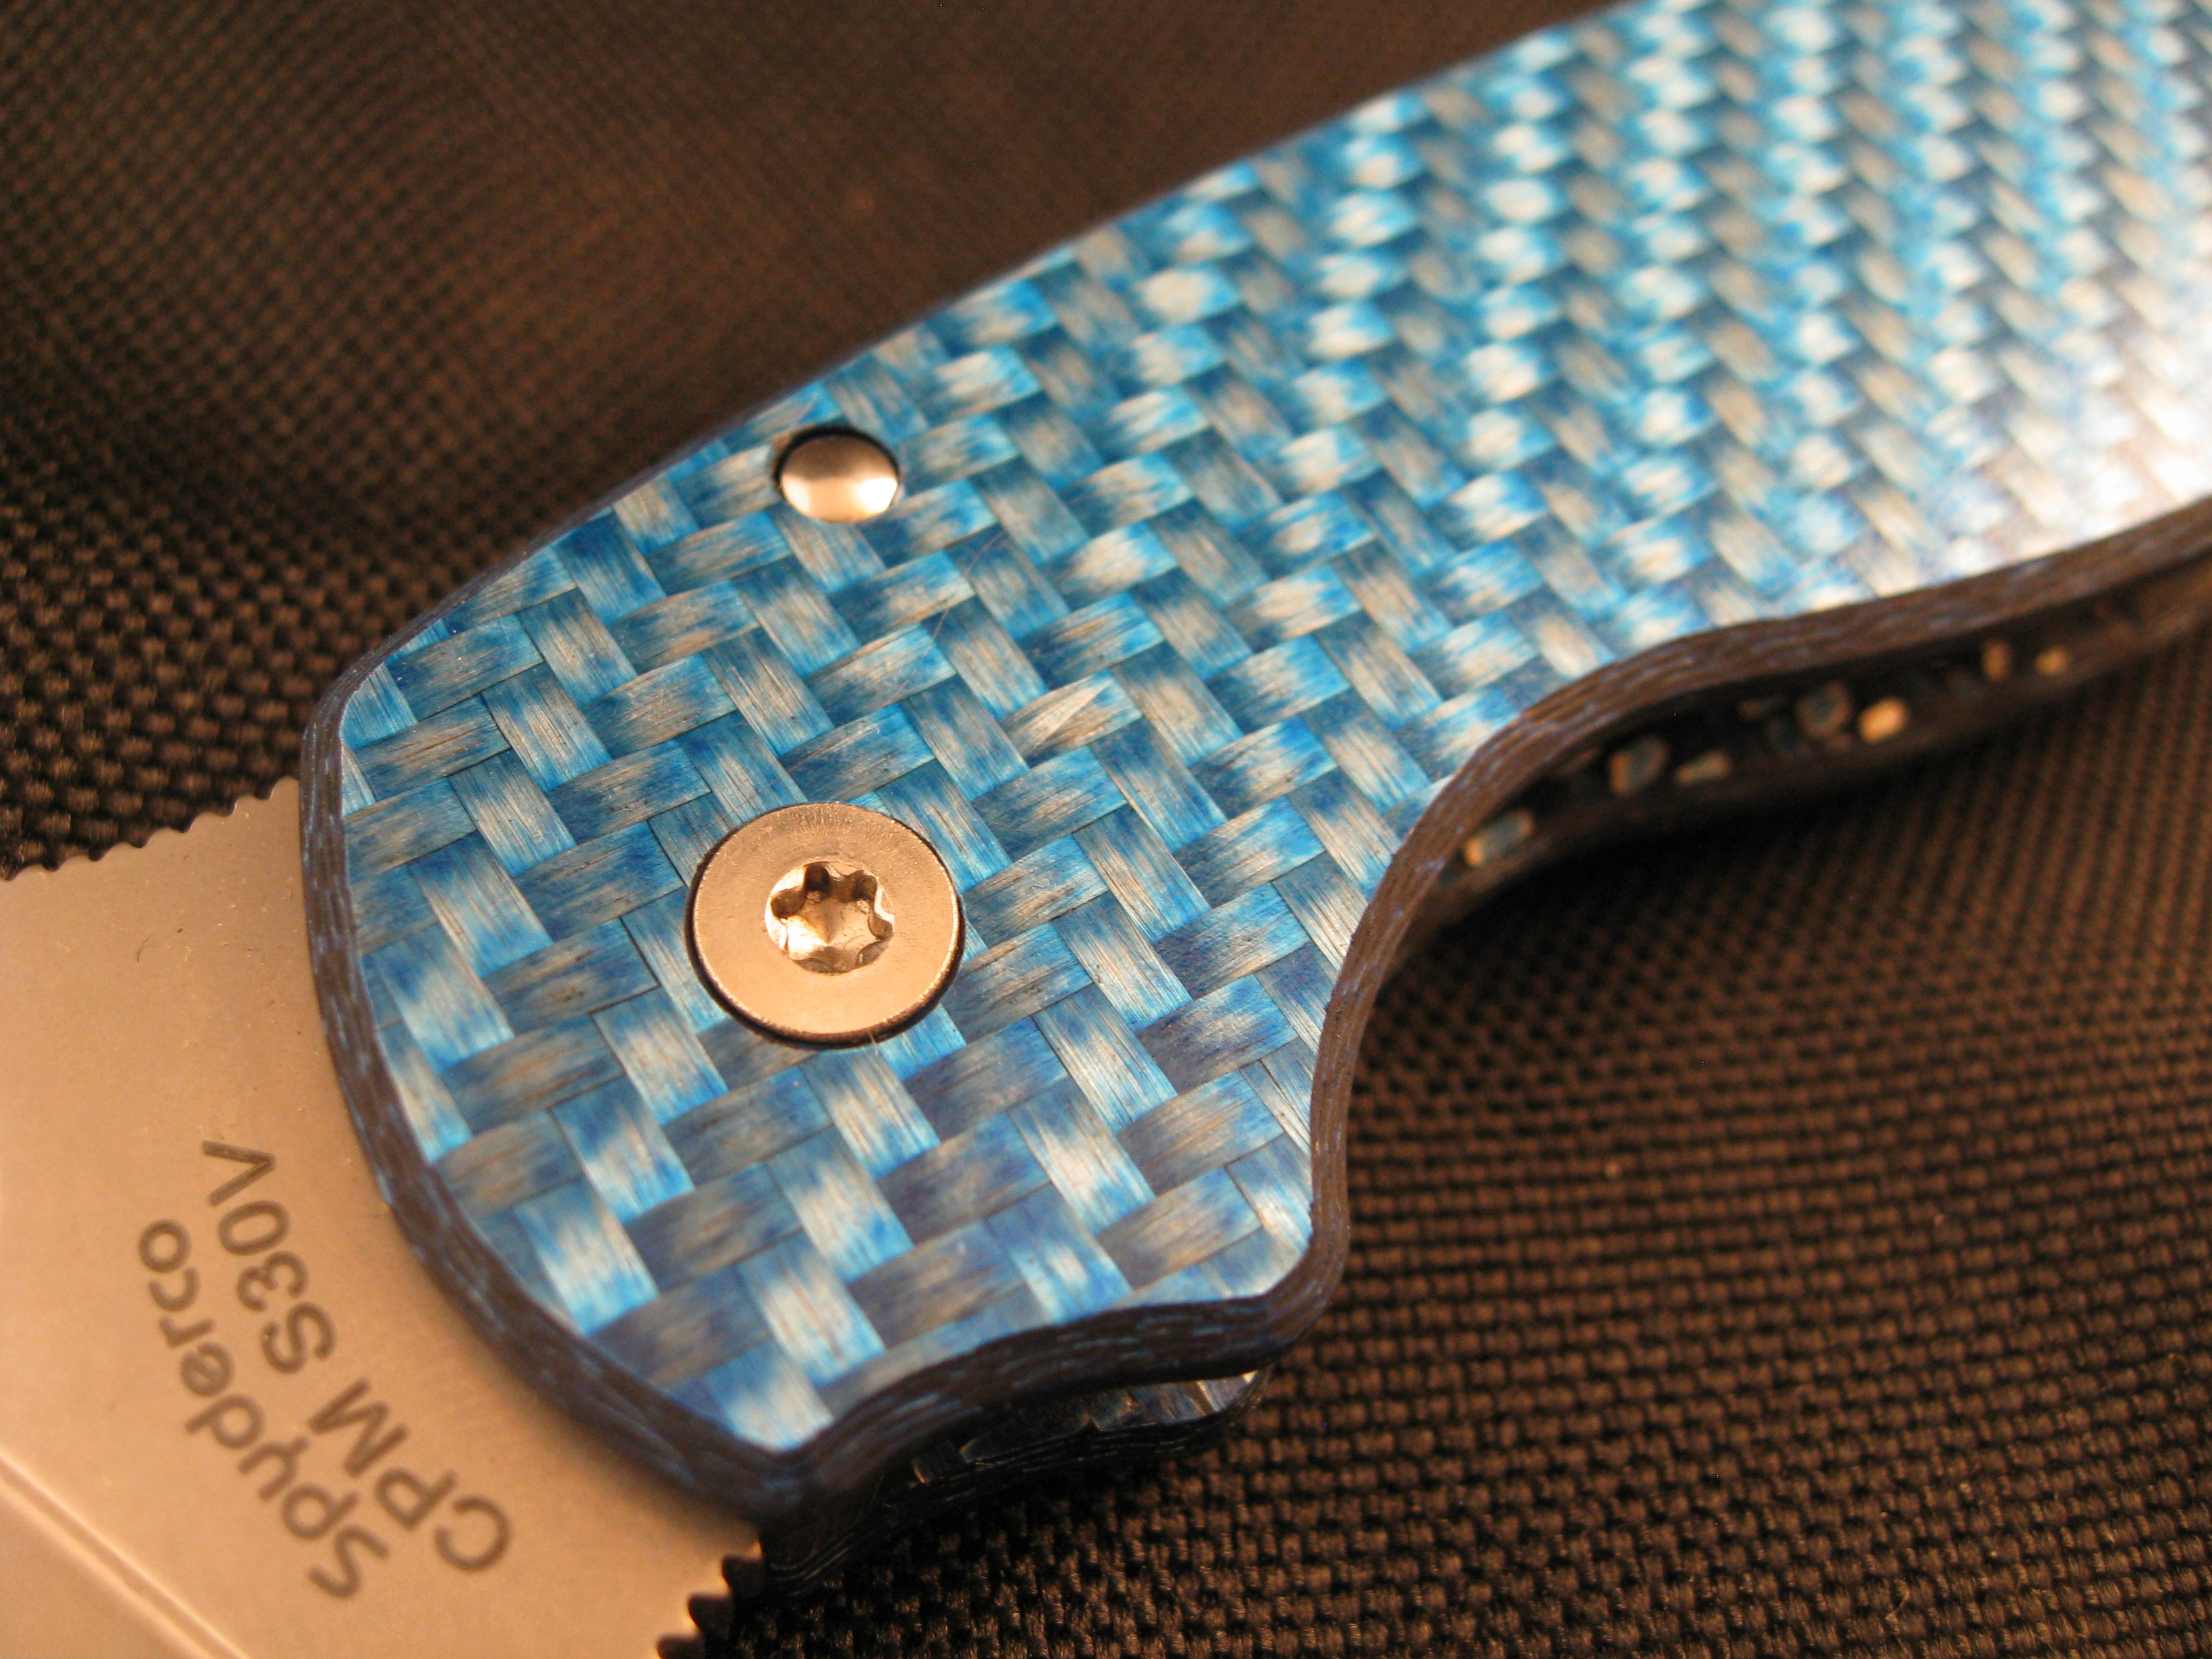 Spyderco Para 3 Ice Blue Twill Custom Scales